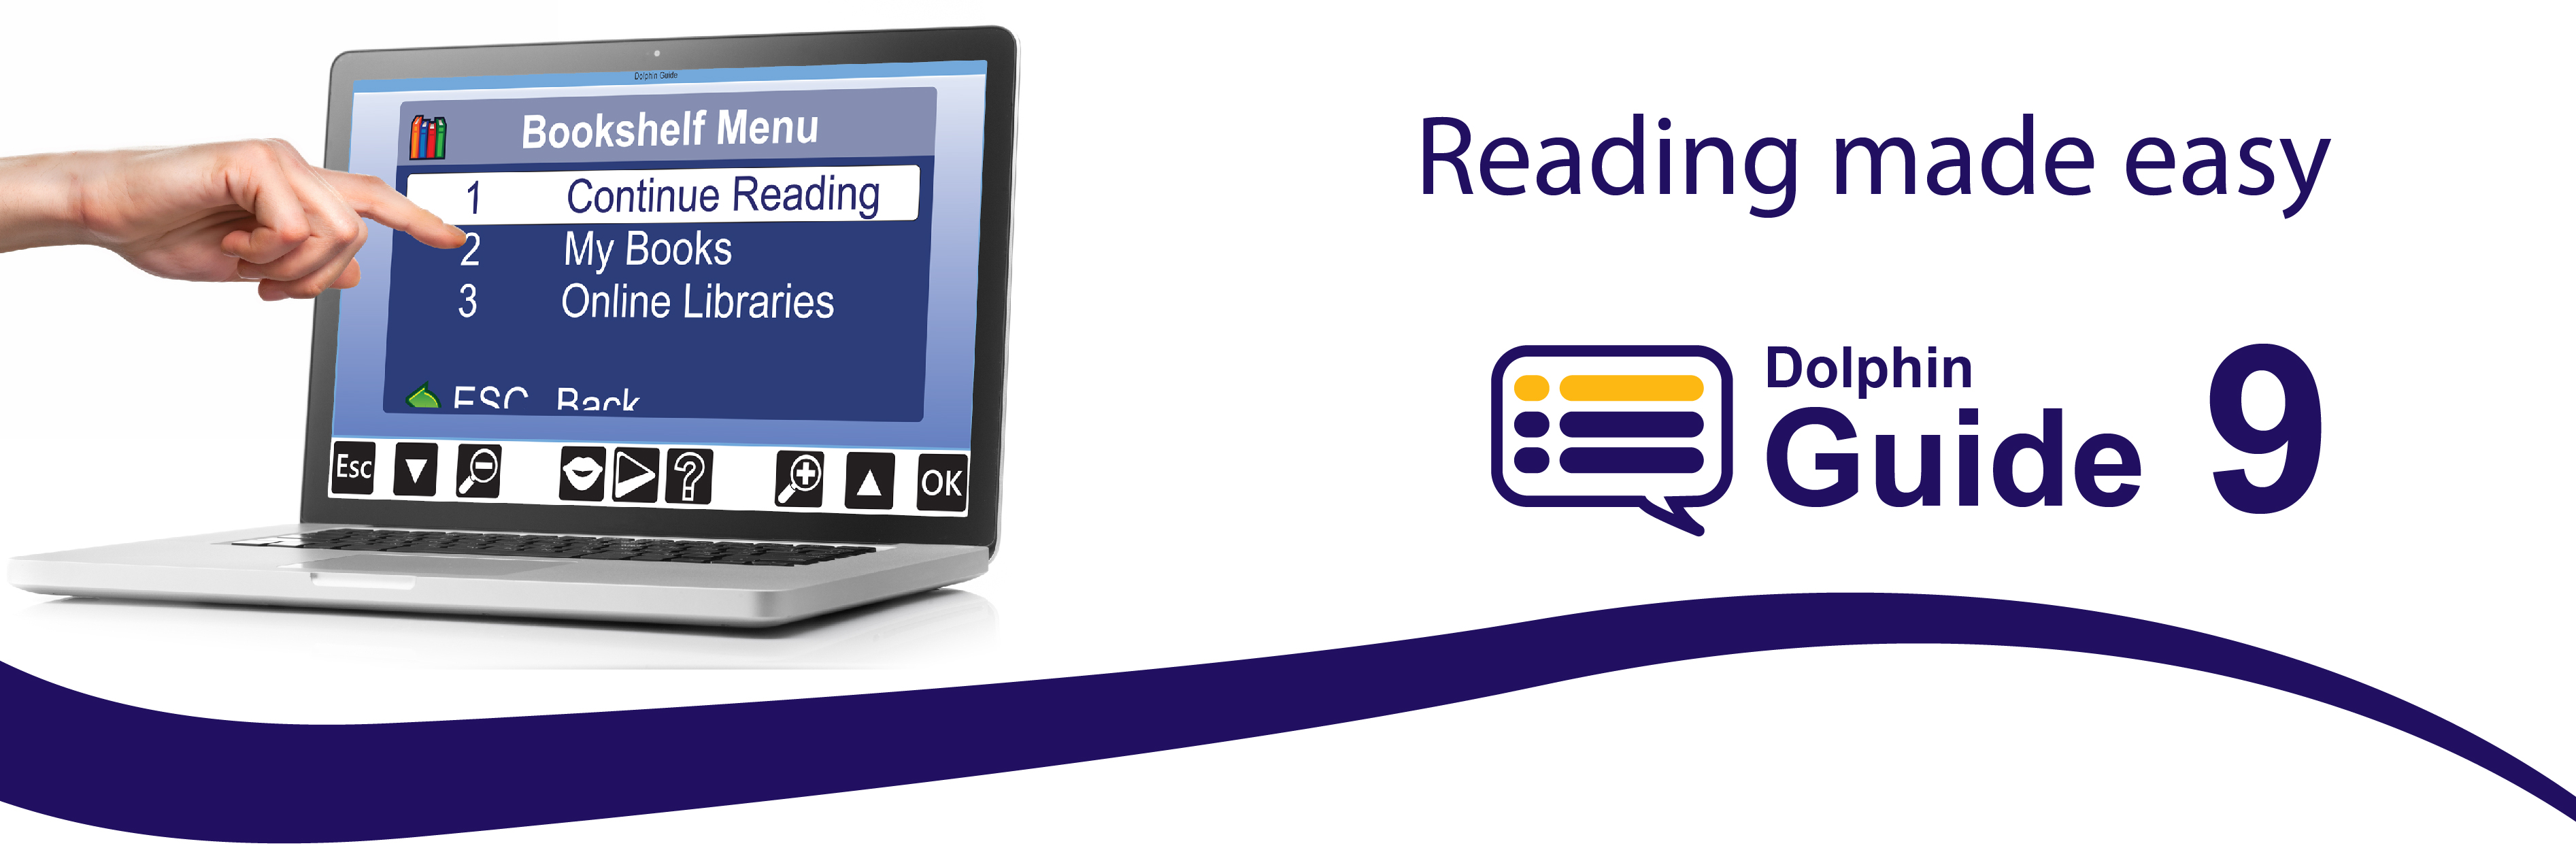 "Guide Bookshelf menu displayed on a touch screen with keyboard. Text reads ""Reading made easy"" with Guide 9"